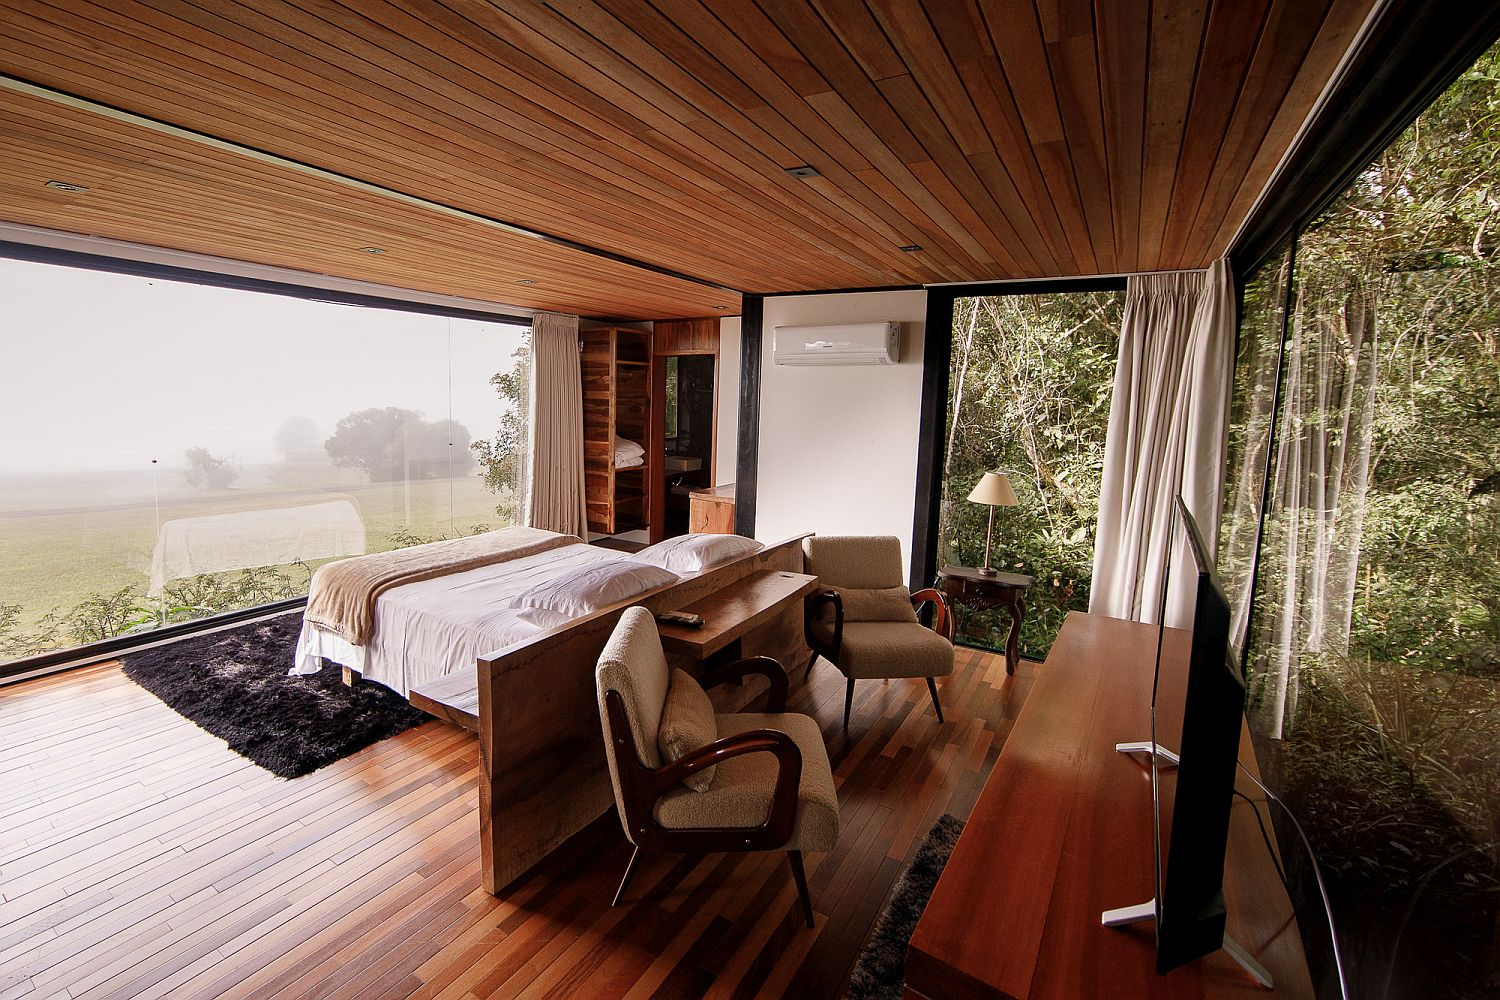 Cost-effective and eco-friendly cabin design in Brazil